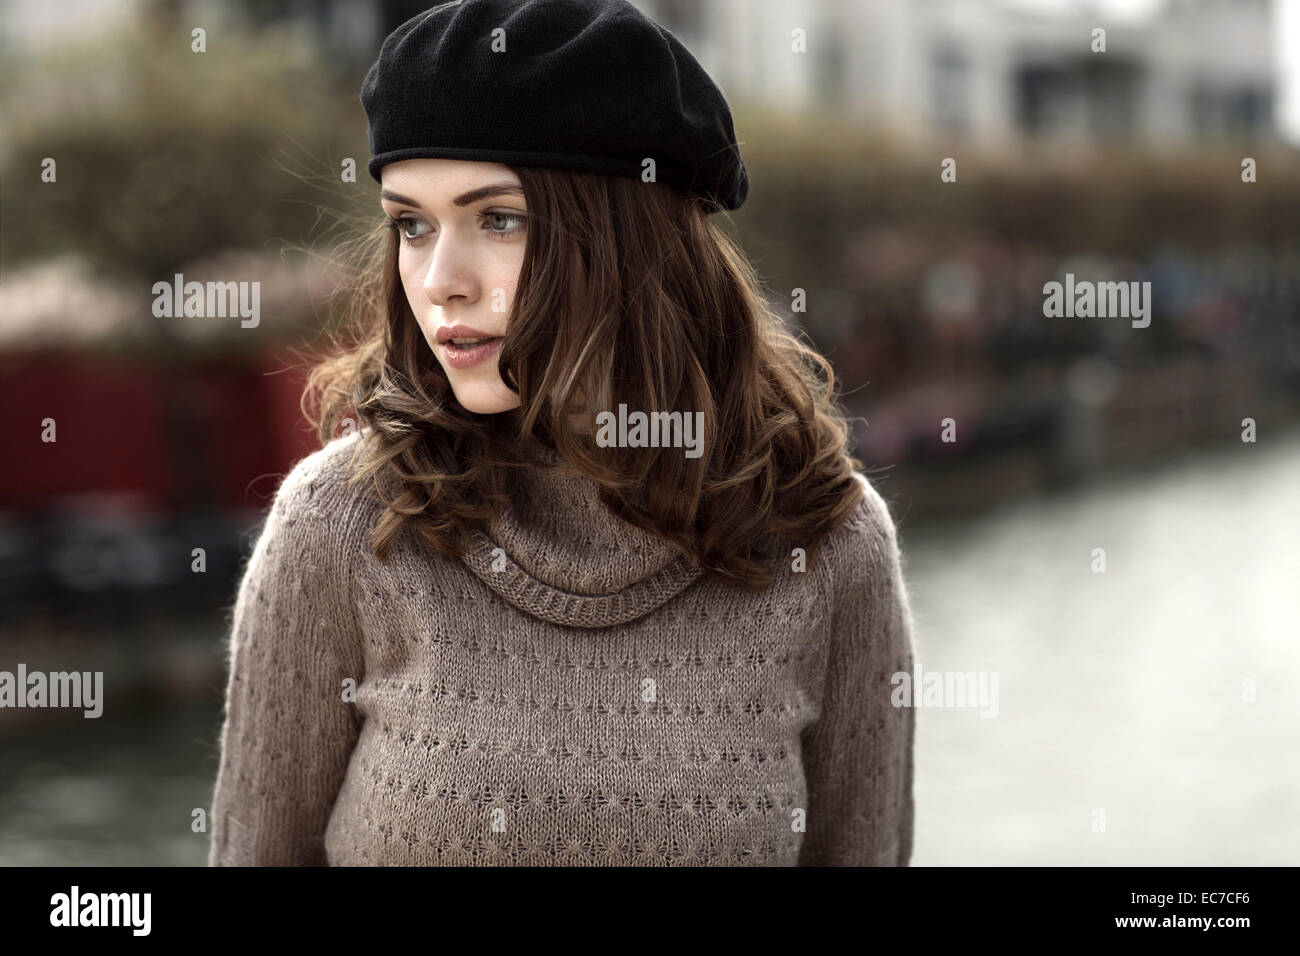 Portrait of young woman wearing beret and knitted dress Stock Photo ... df8e4d21786